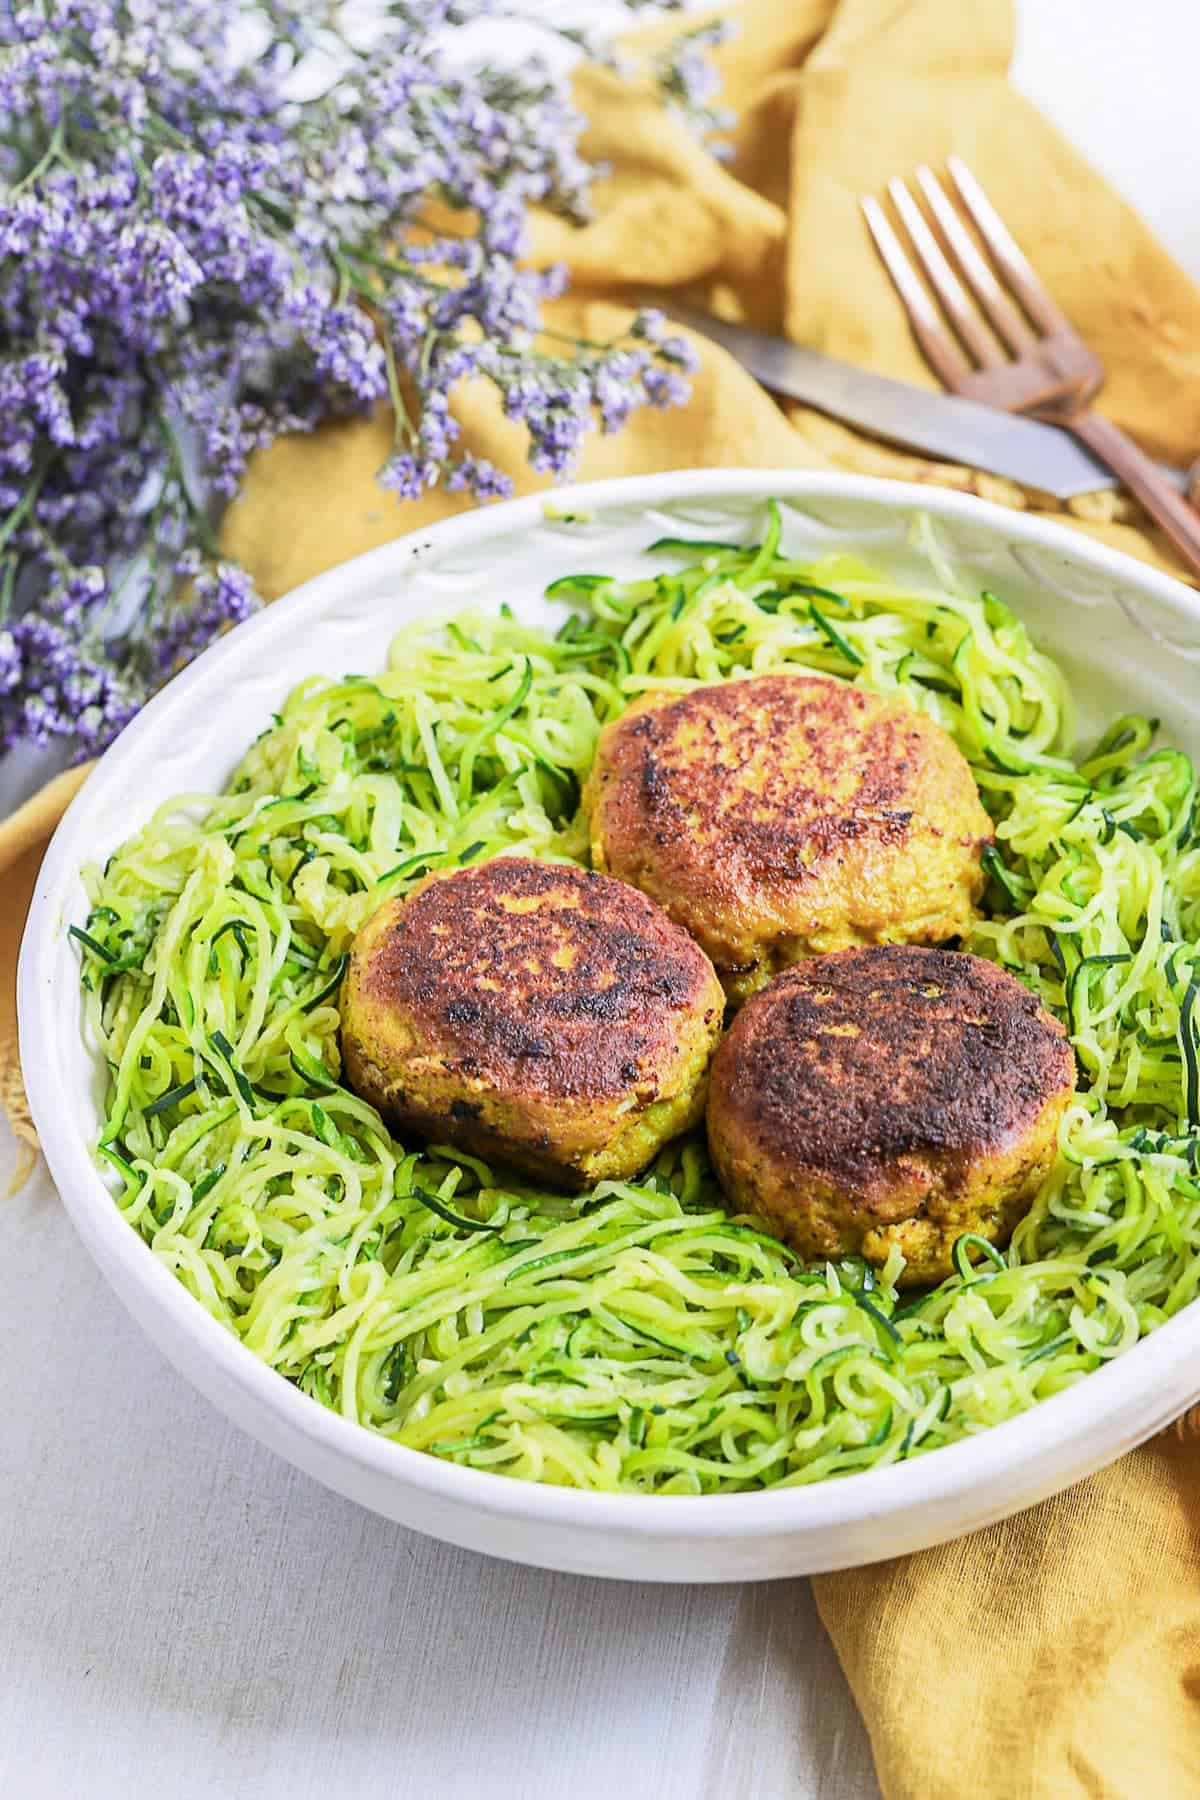 Meatballs served with zoodles in a white bowl